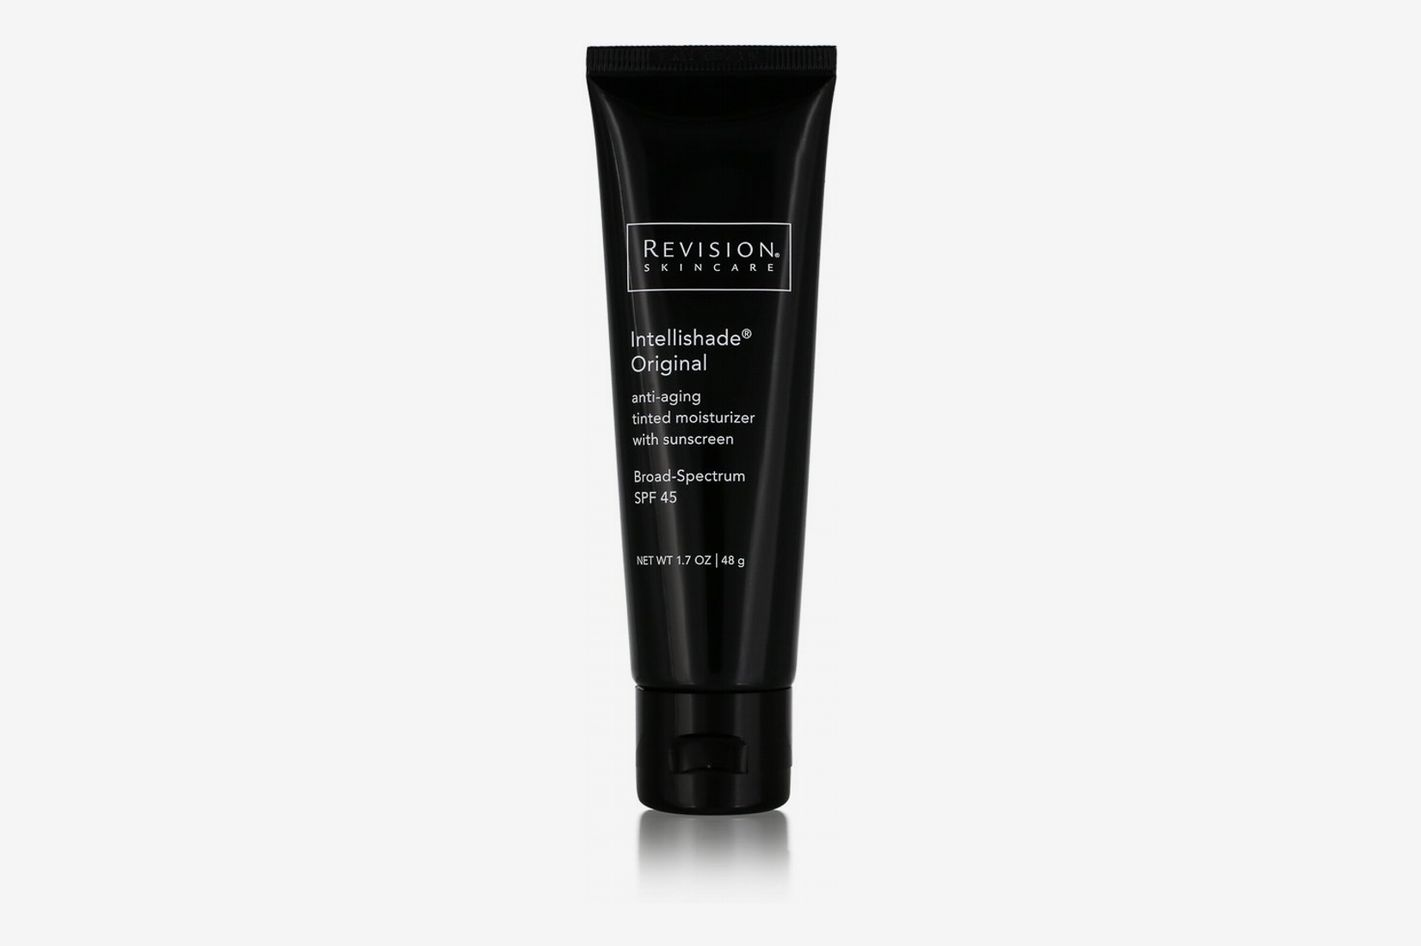 Revision Skincare Intellishade SPF 45